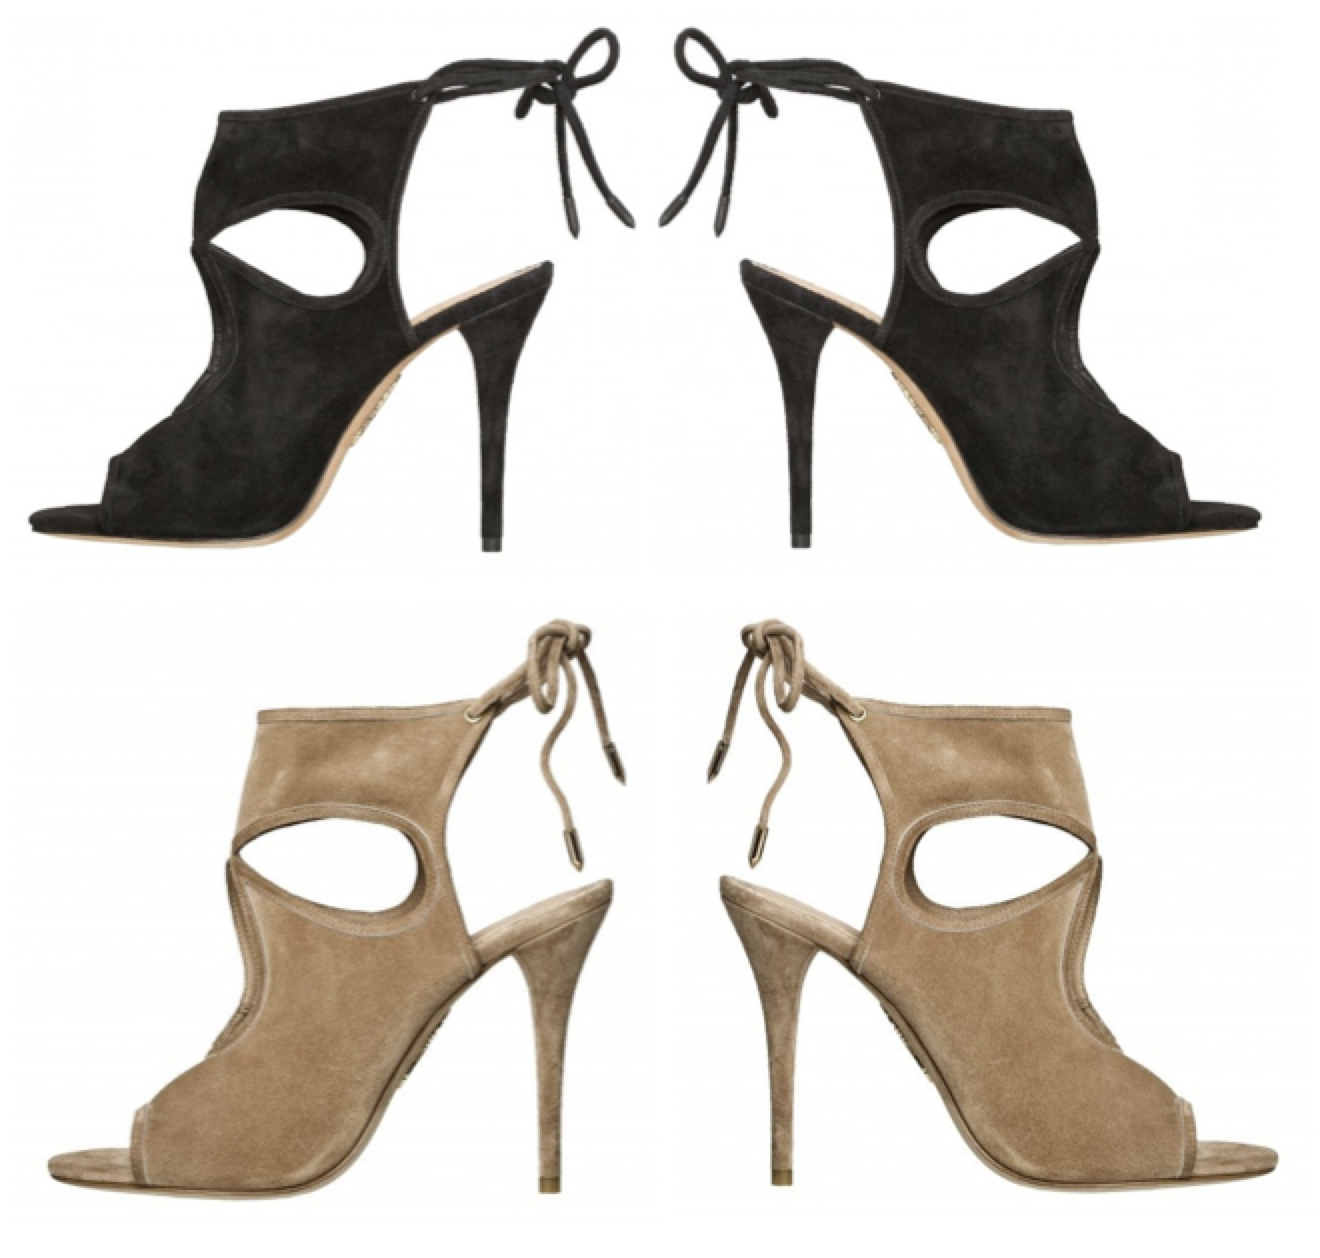 Aquazurra Sexy Thing suede heels shoes